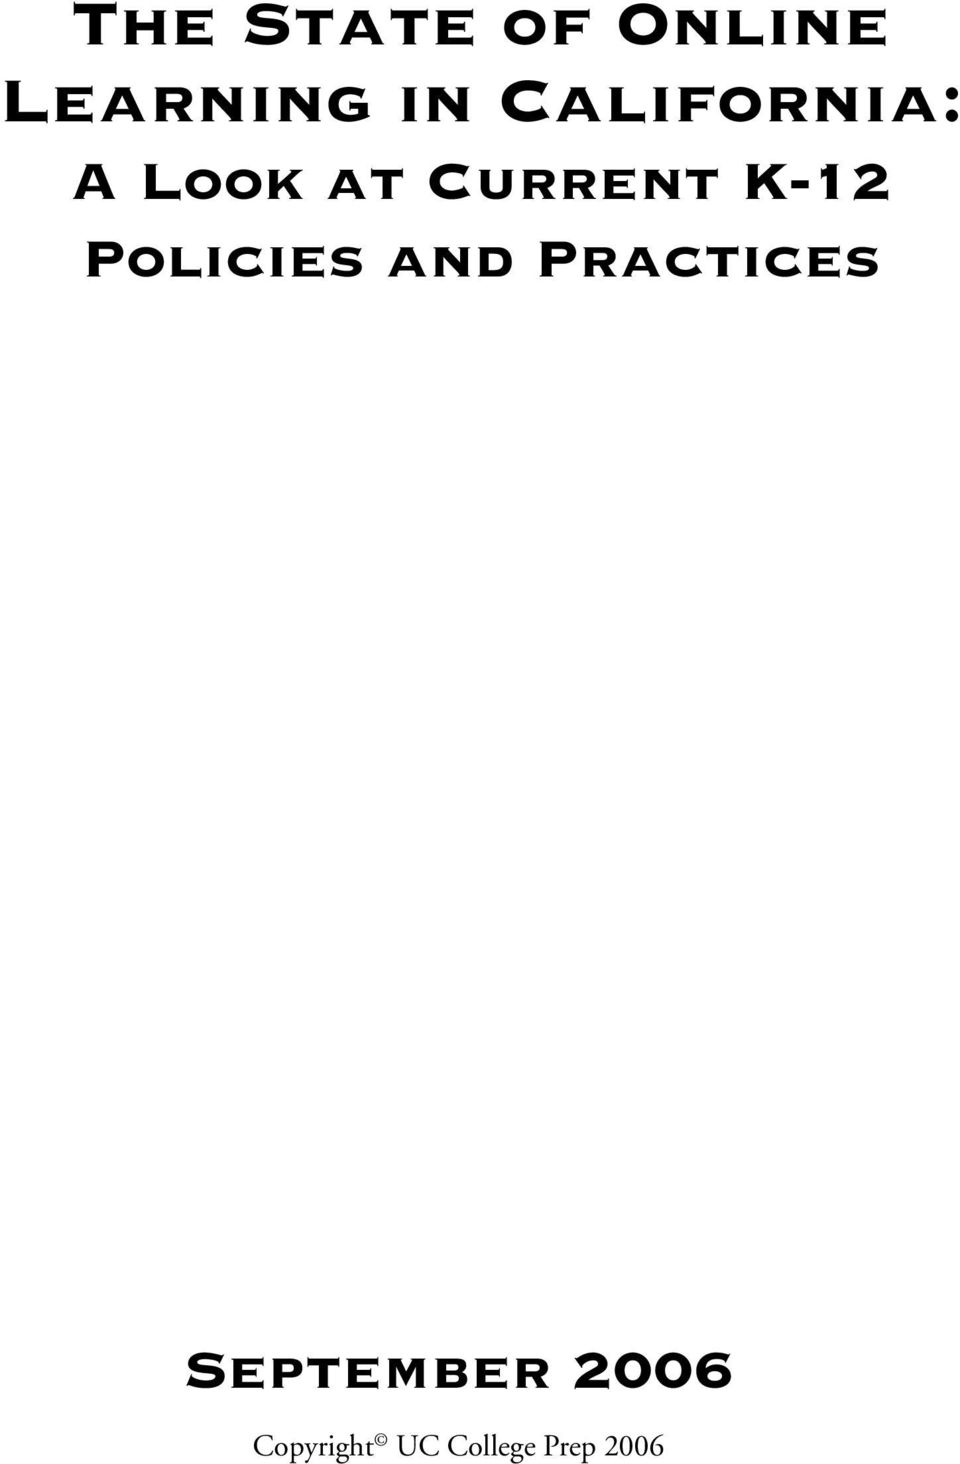 K-12 Policies and Practices